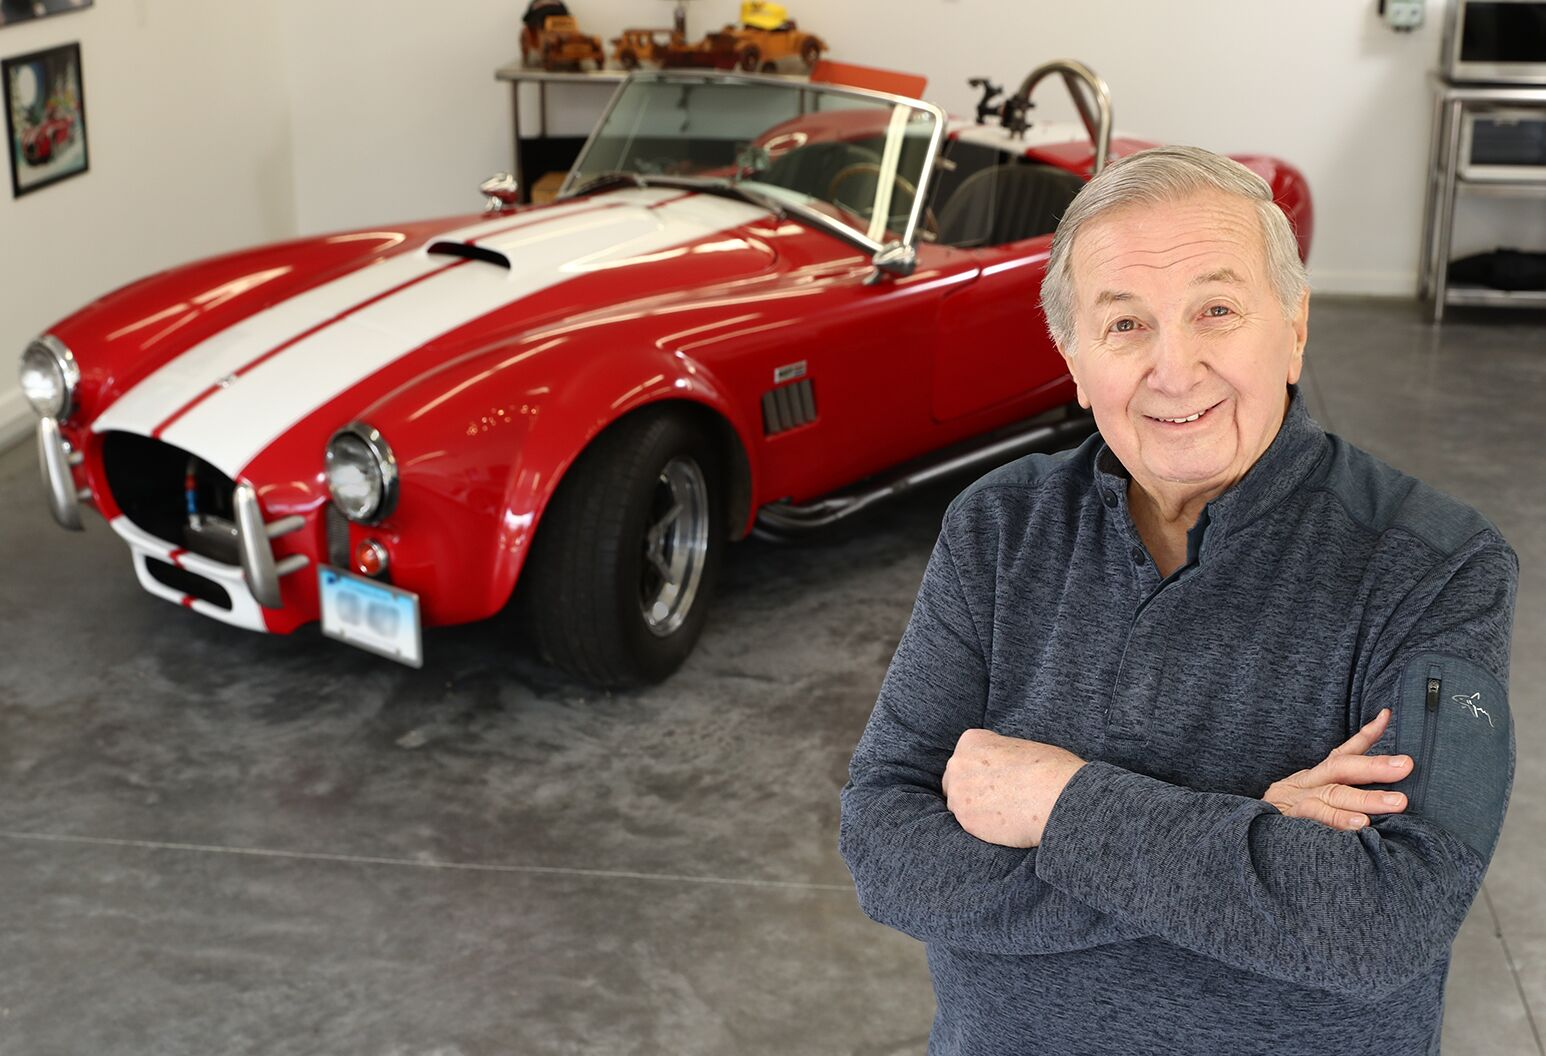 Smiling man in his 70s in his garage, standing in front of a red hot rod.